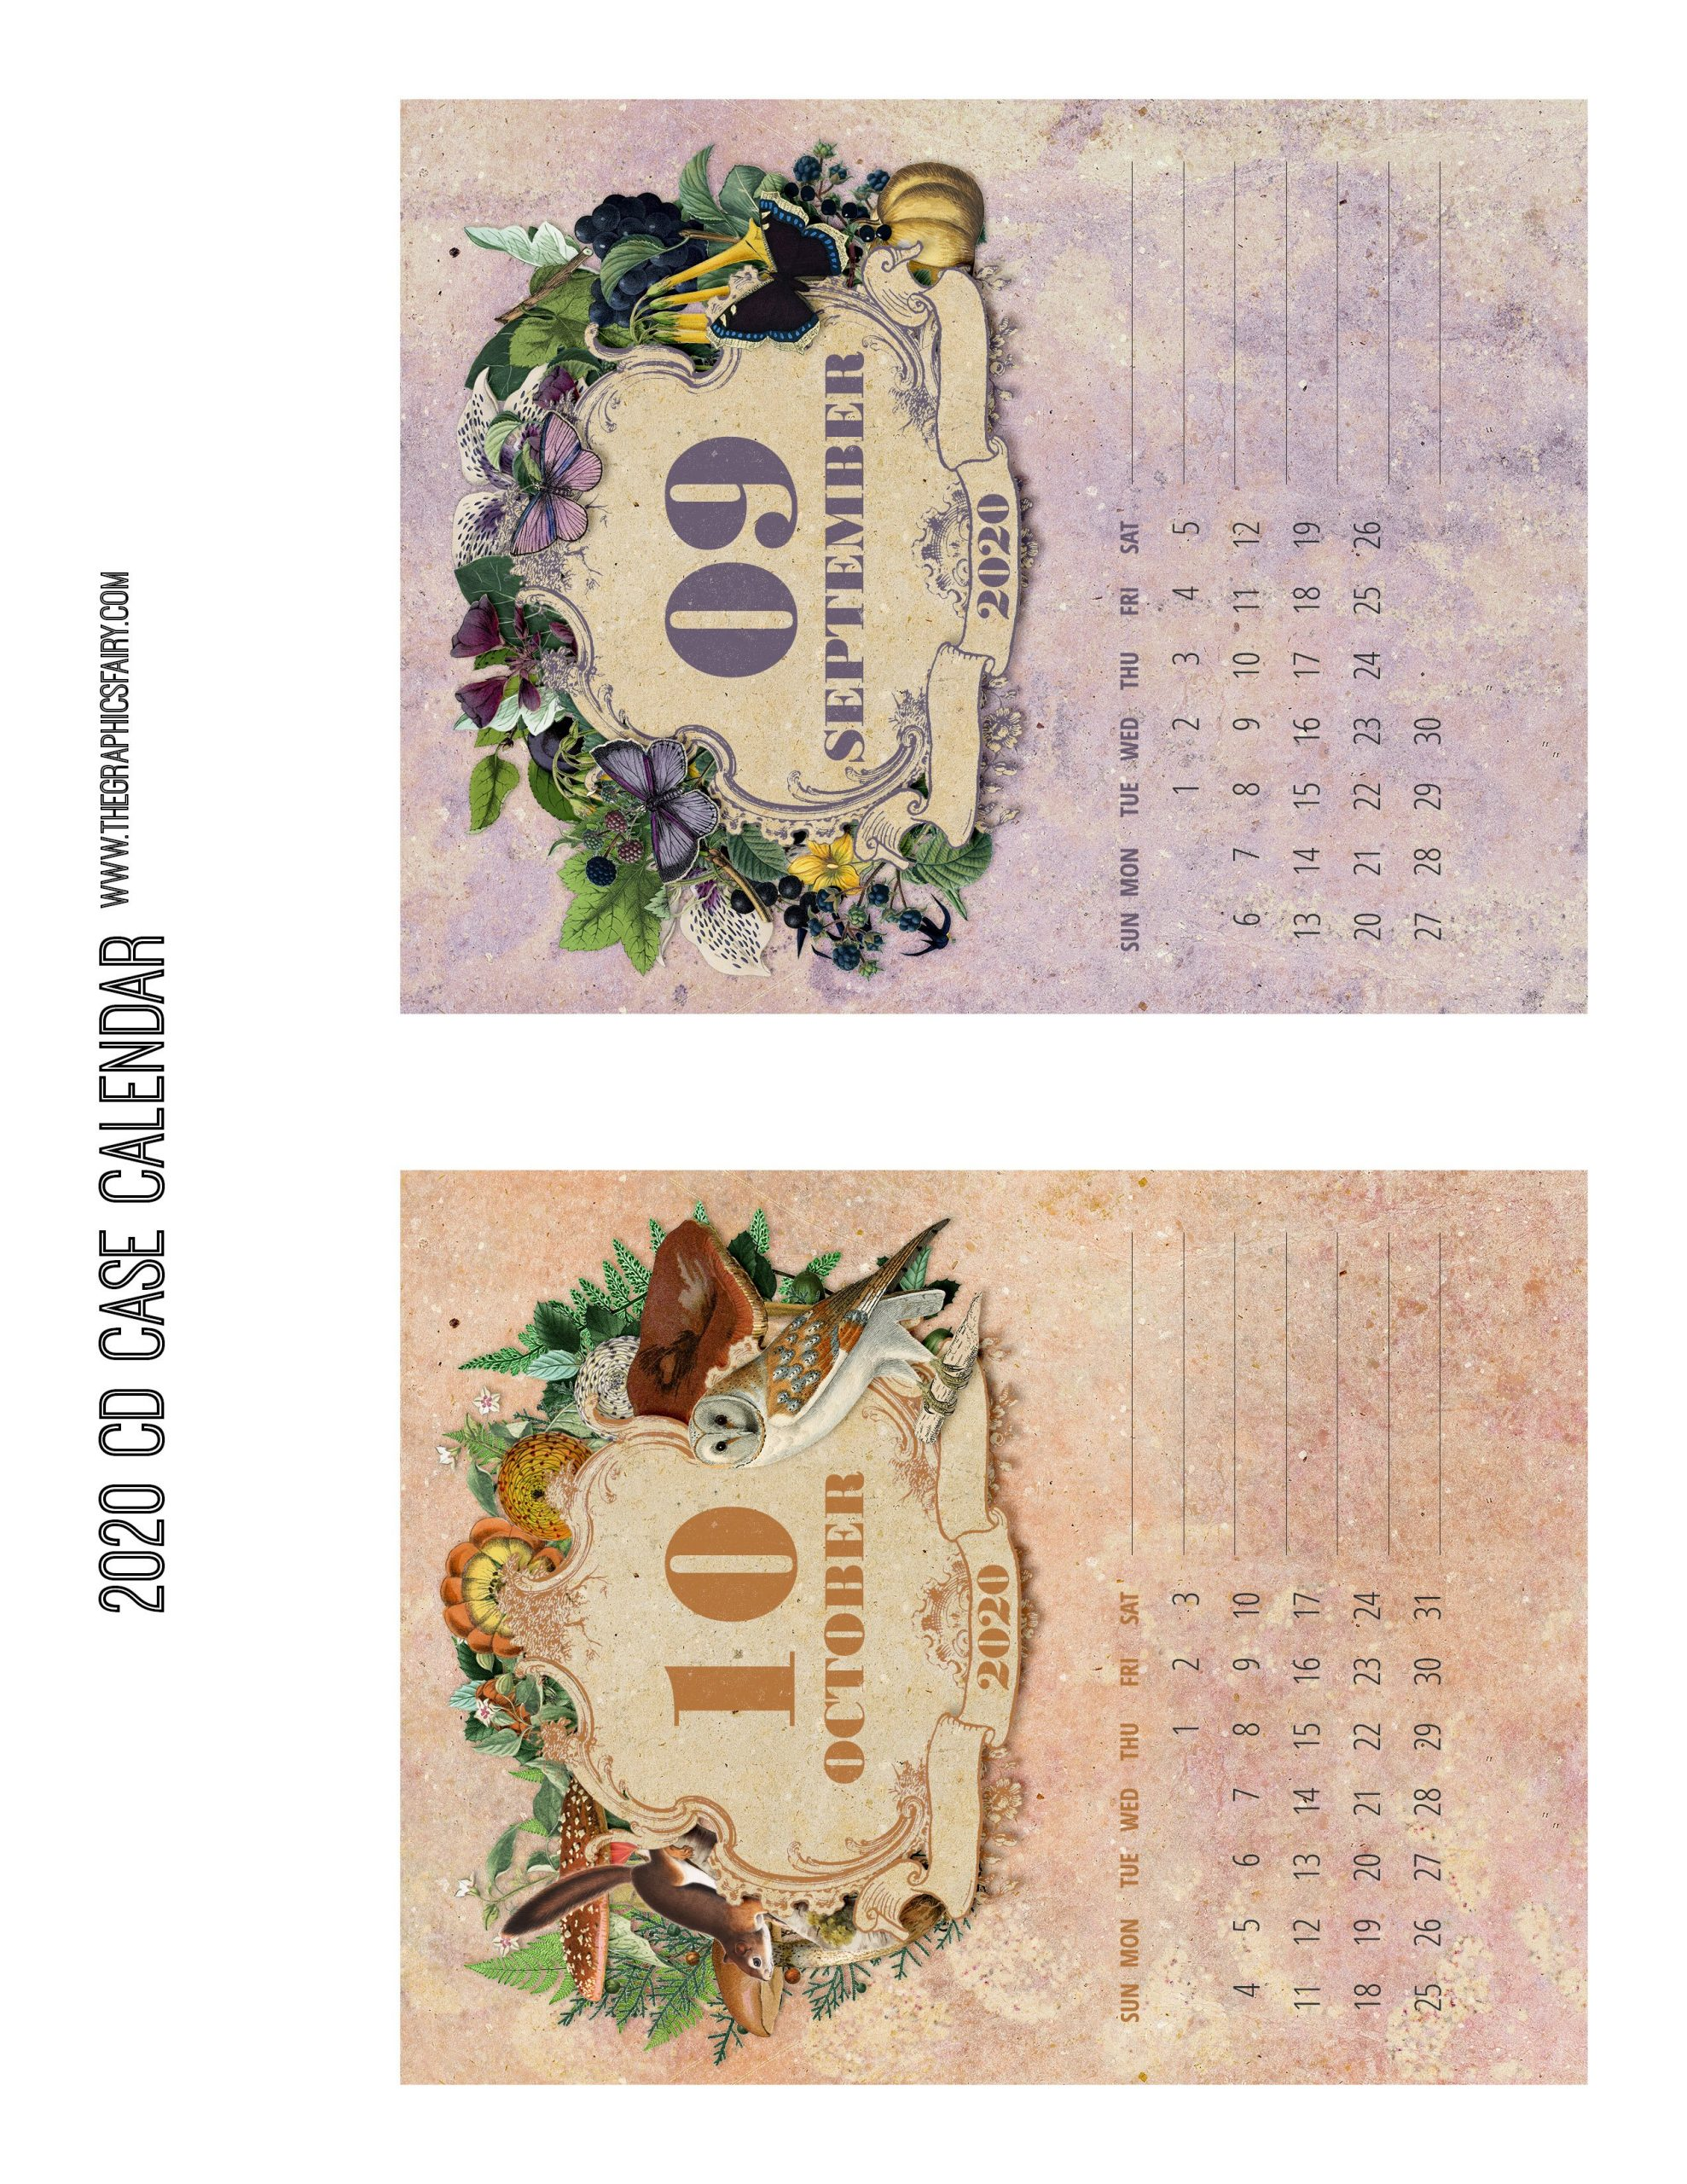 Free Printable Calendar 2020 – Cd Case Calendar! – The Free 2016 Calendar With Room For Taking Notes